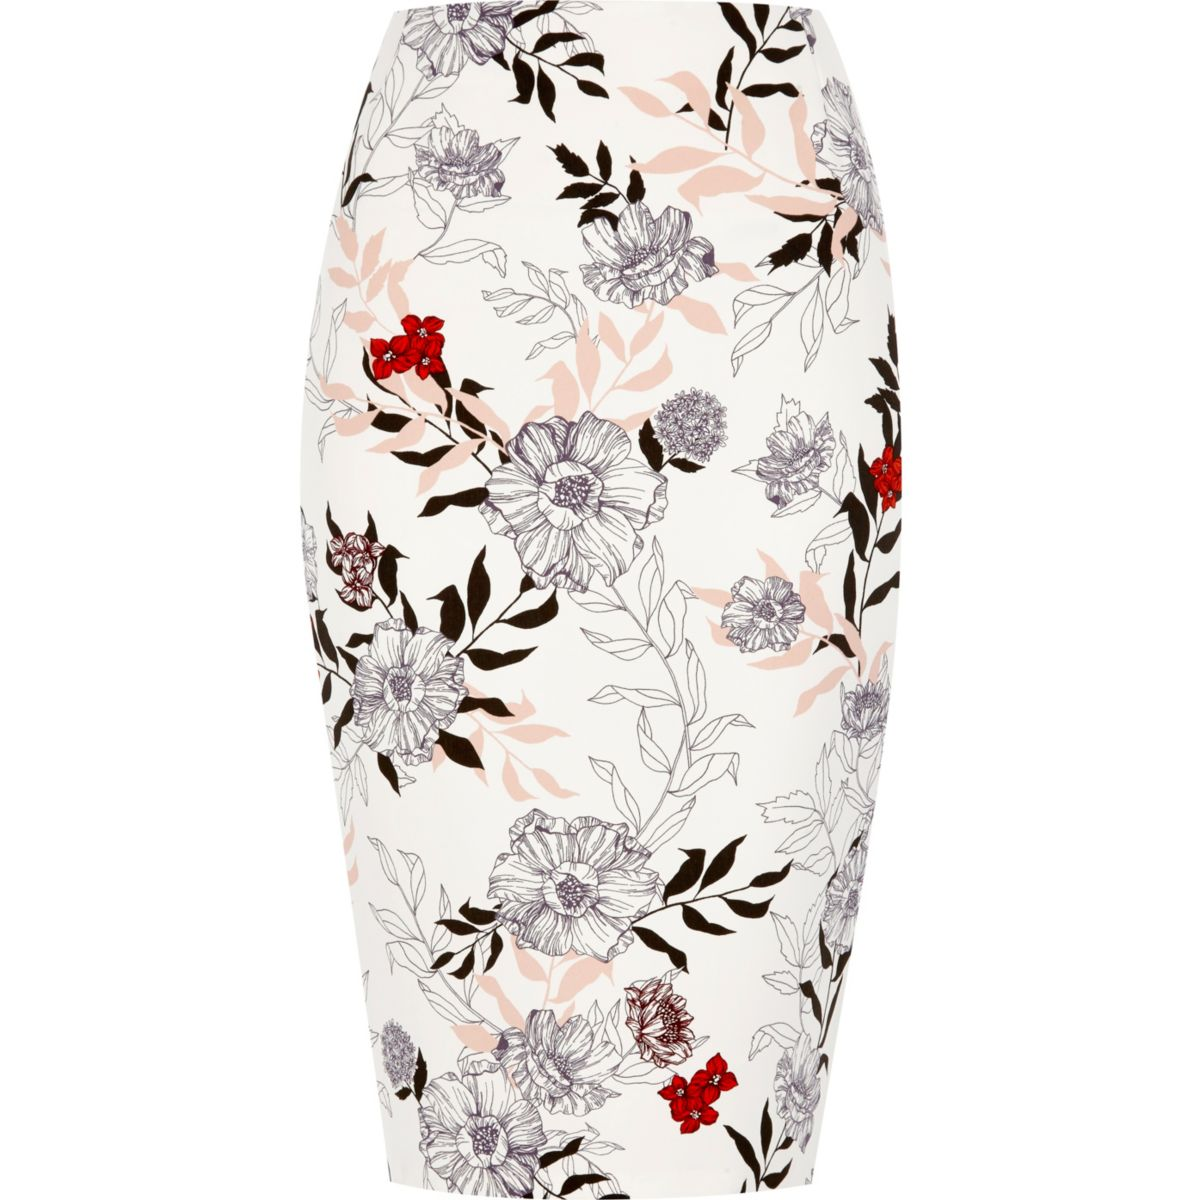 Banana Republic Womens Floral Skirt Navy Blue & Cream Pleated Skirt Size 2. Odille Anthropologie Peach Cream Floral Butterflies Pleated Front Skirt Size 2. Odille · 2 · Knee-Length. $ or Best Offer +$ shipping. Women's Pleated Mid Length Midi Skirt - Made in the USA, by Collections Etc.